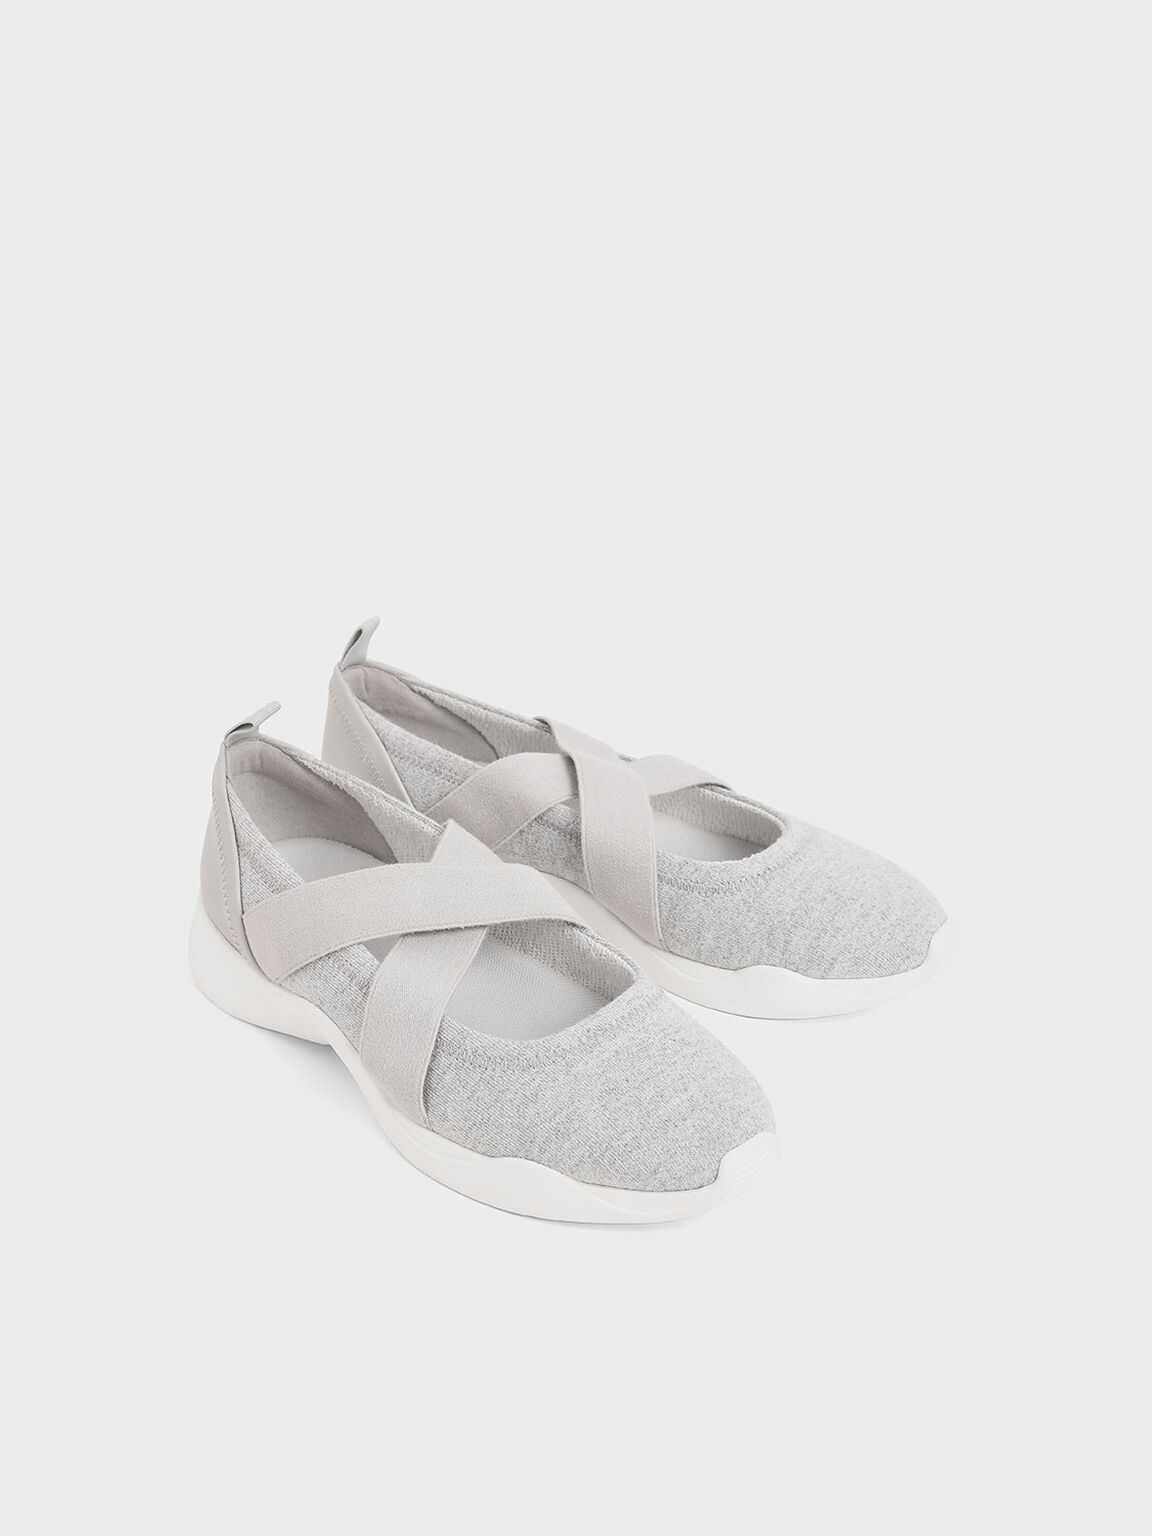 Criss-Cross Slip-On Sneakers, Grey, hi-res